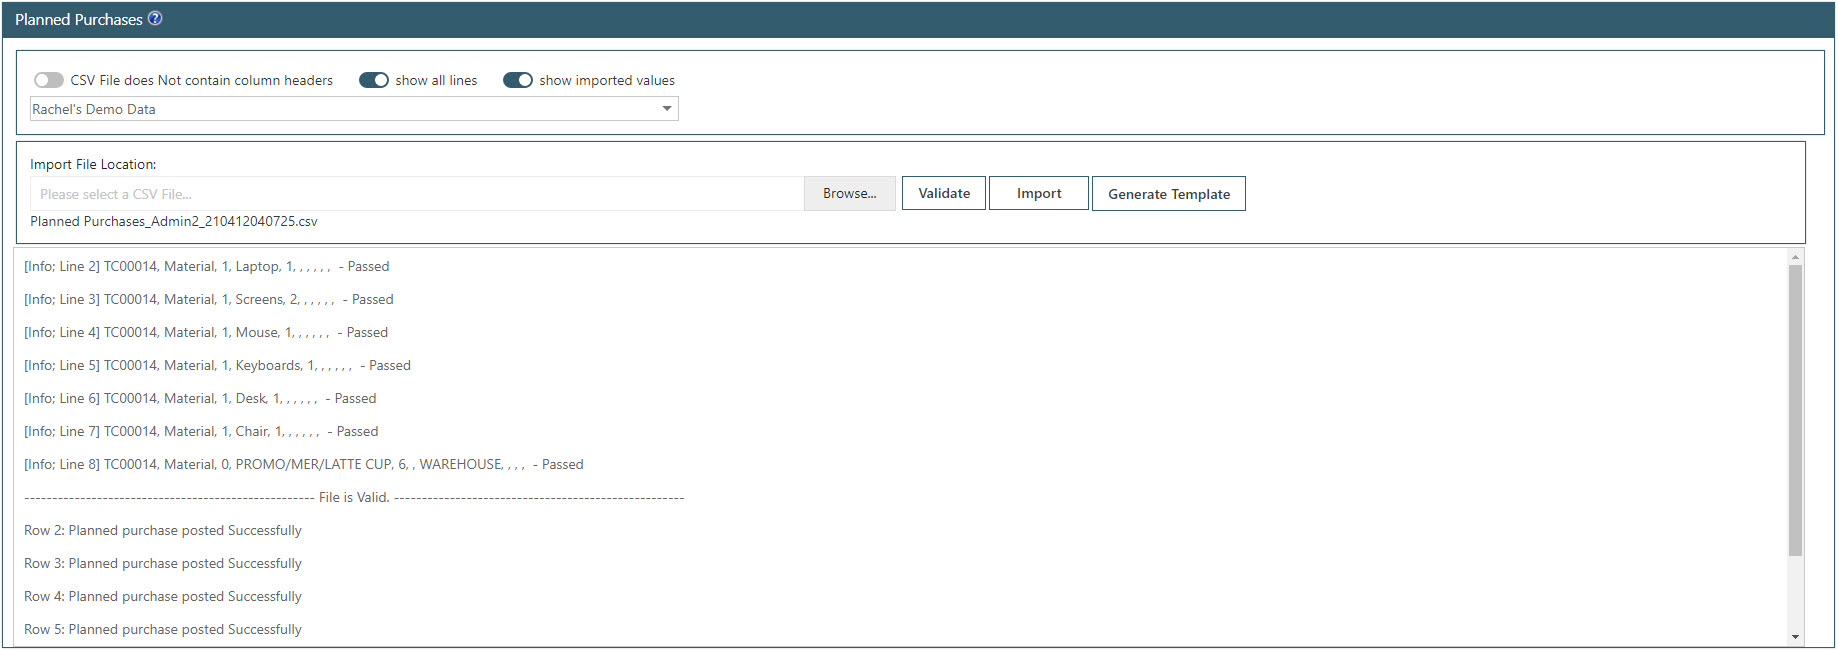 Sicon WAP Purchase Requisitions Help and User Guide - Requisition HUG Section 24.2 Image 2